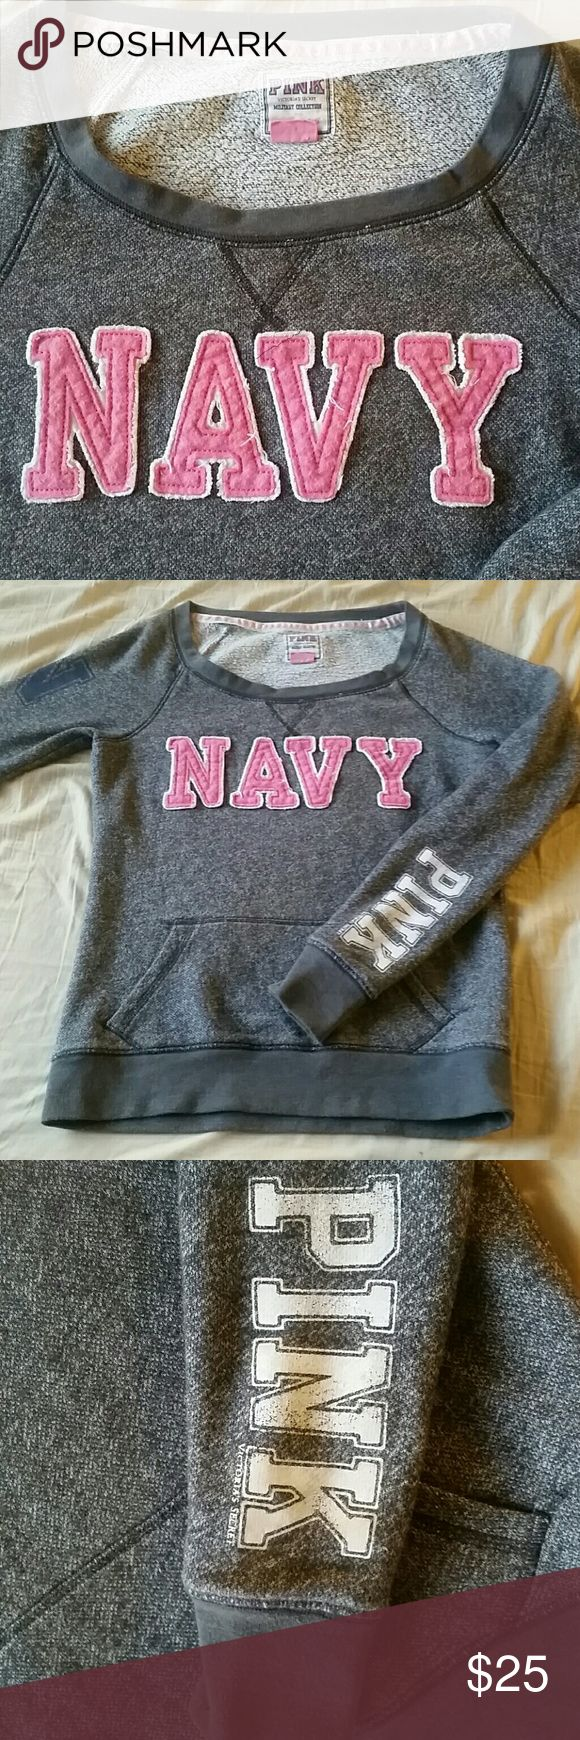 VS Military Collection Navy Sweatshirt (RARE!) Victoria's Secret Pink, US Navy sweatshirt, gently used, older. These are no longer made and I have scoured the internet to find another one like it and I cannot. Similar pieces have been sold for $40-60. Victoria's Secret Sweaters Crew & Scoop Necks